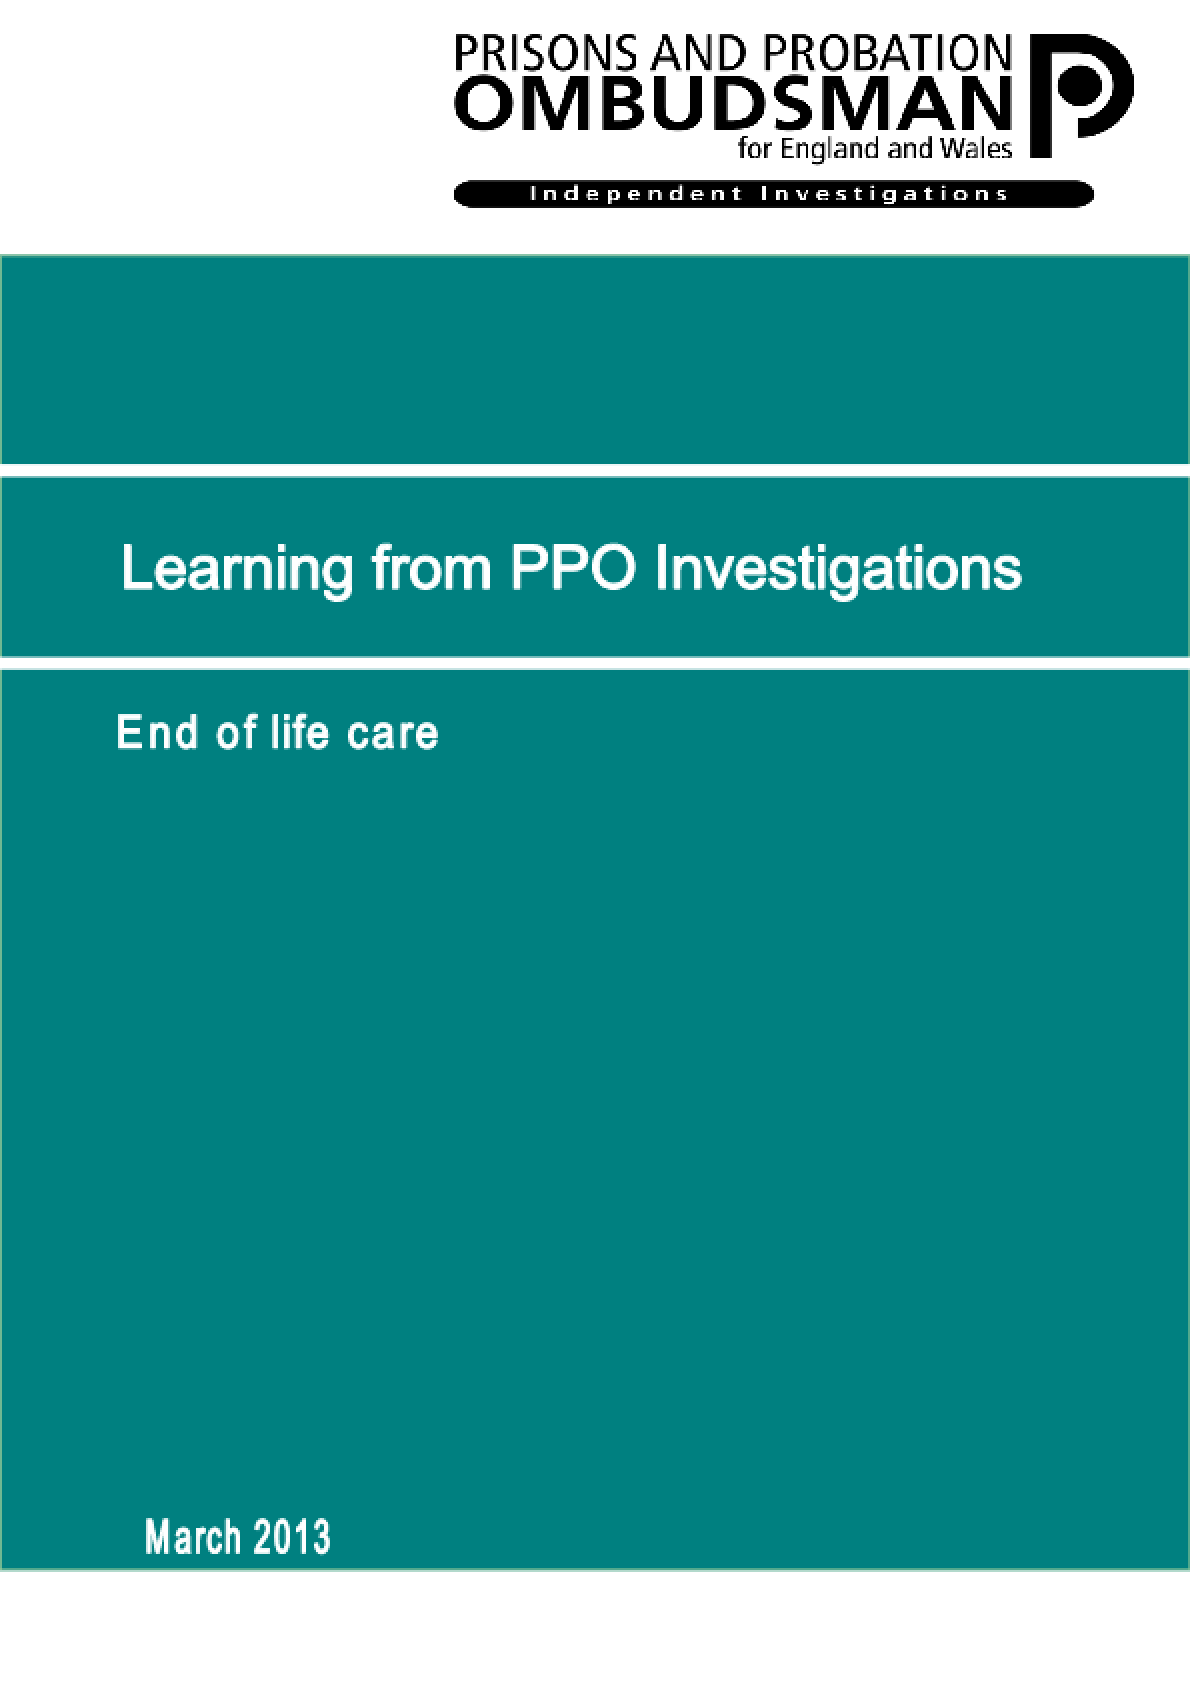 Learning from PPO Investigations: End-of-Life Care